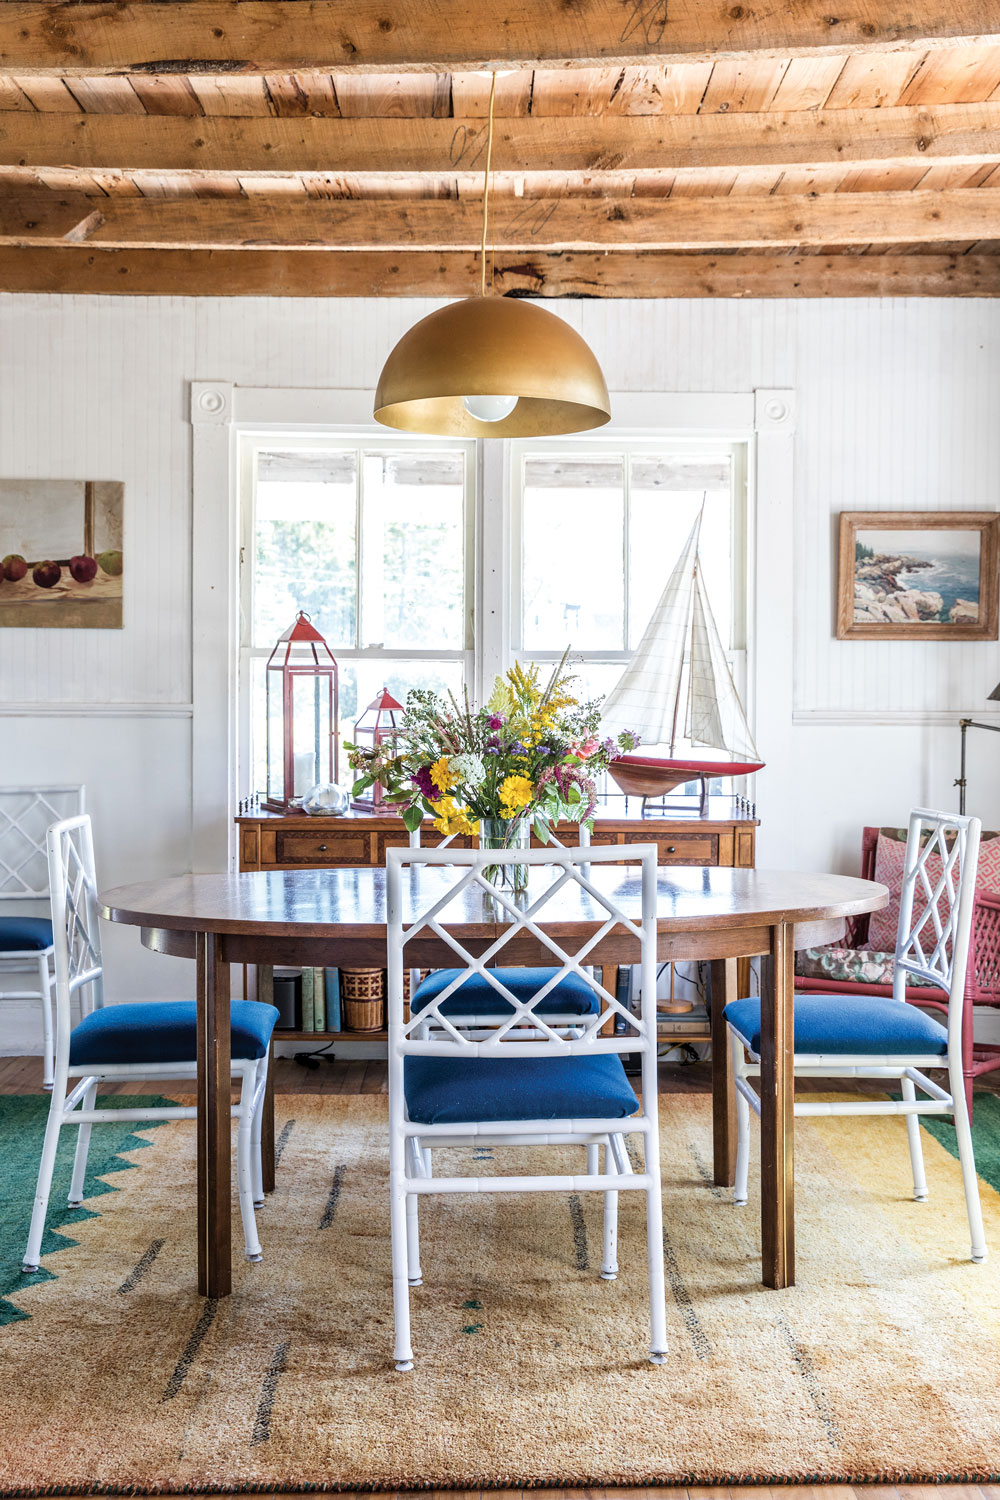 A Target brass pendant pulls the warmth of the exposed beams into the dining room, where salvaged metal chairs, a hand-me-down, mid-century table, and yard-sale oil paintings create an elegant, lived-in look.